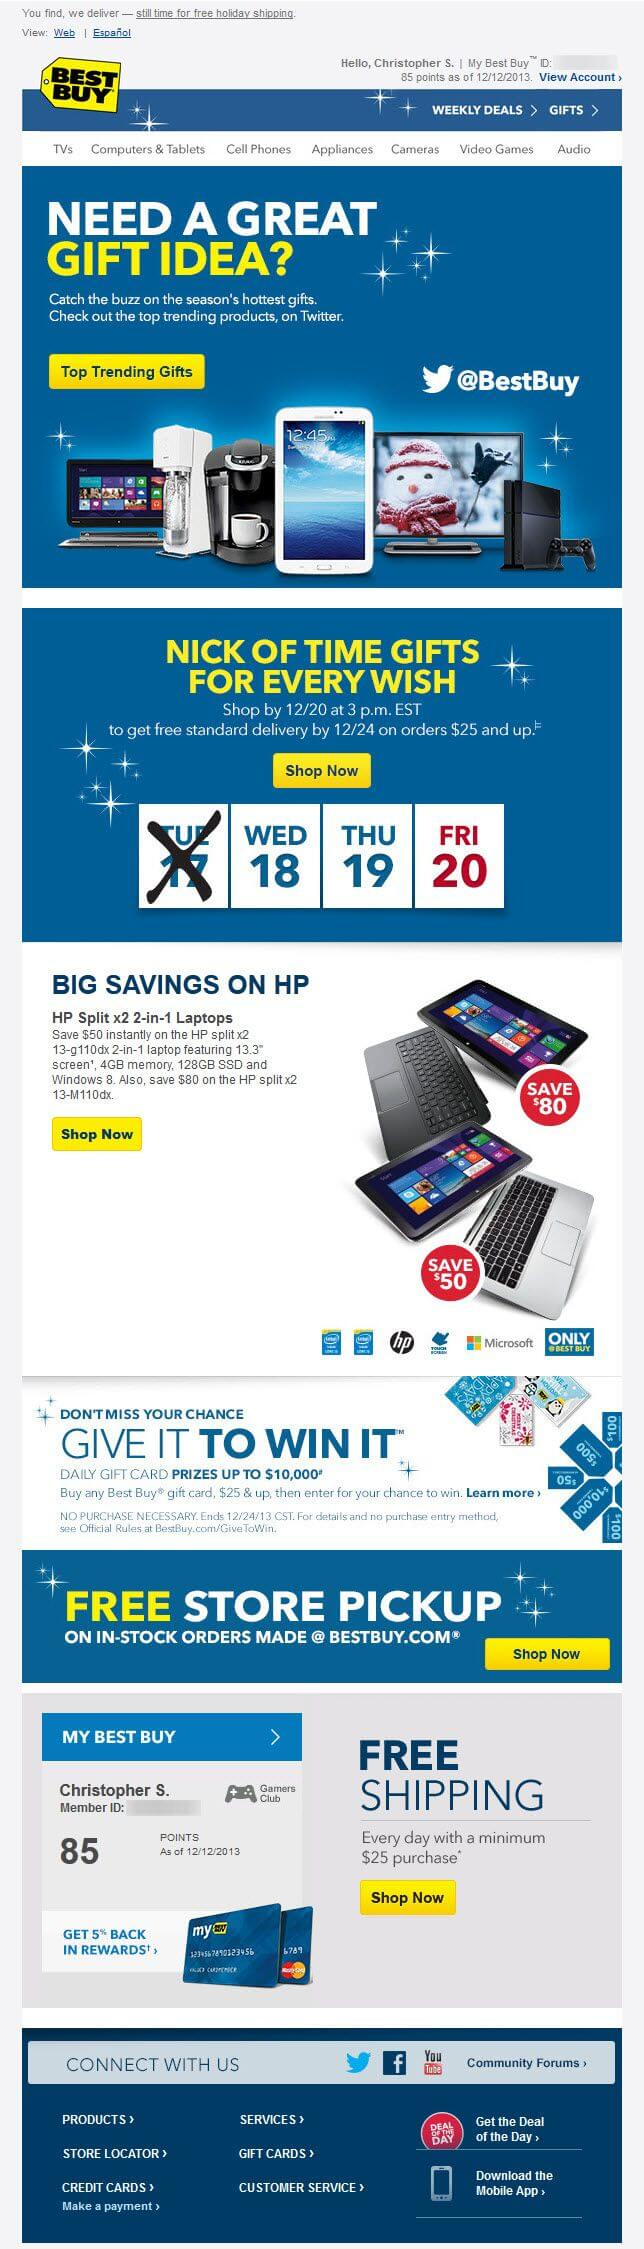 Best Buy - Promotional